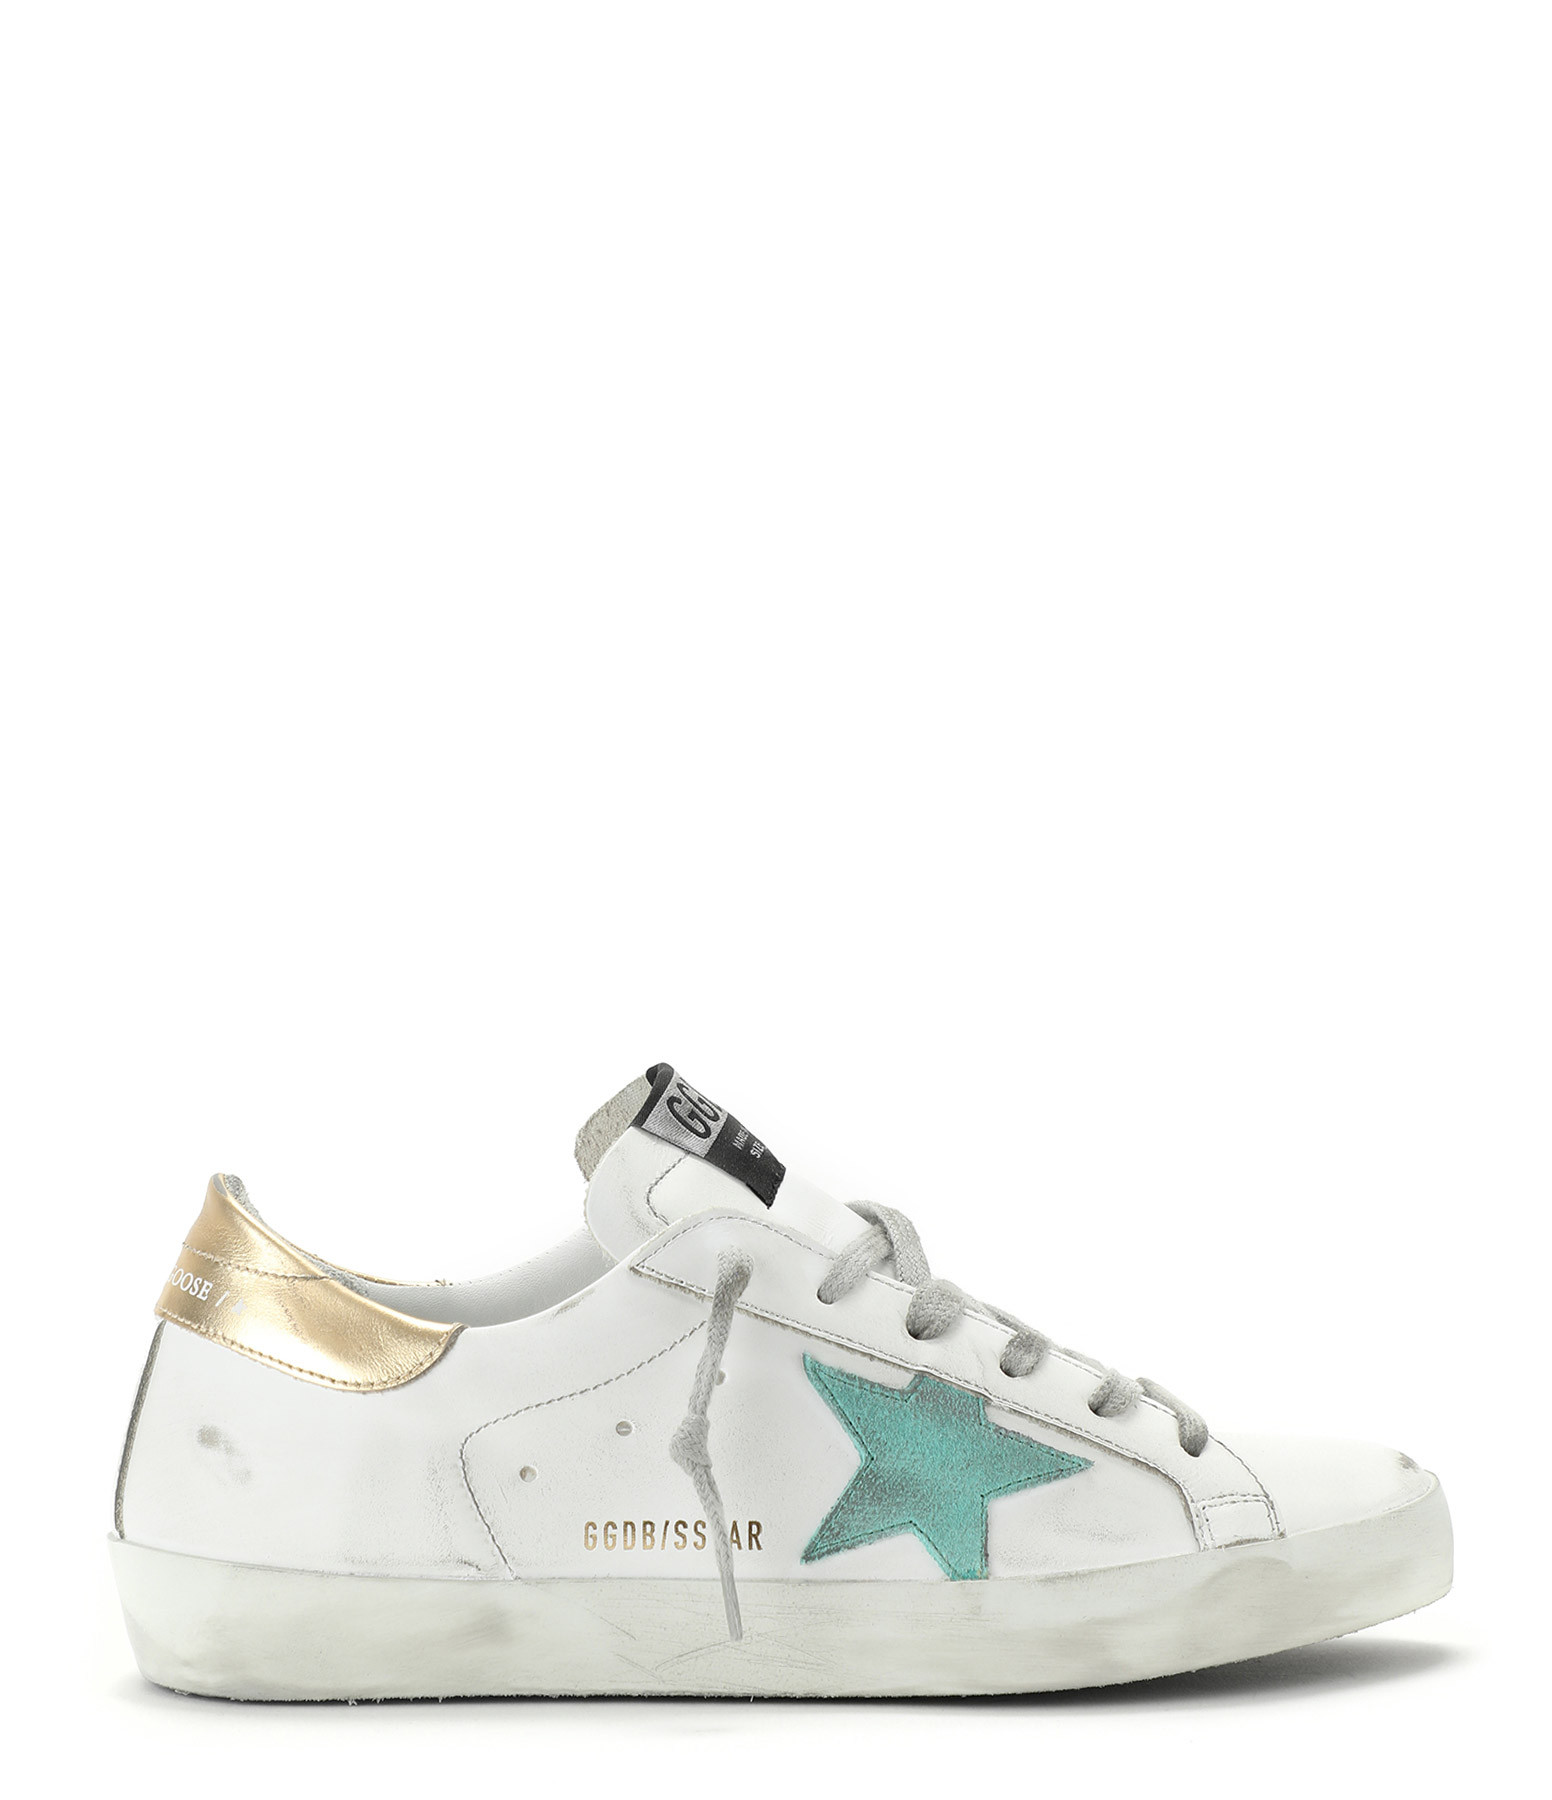 GOLDEN GOOSE - Baskets Superstar Cuir Suédé Vert Doré